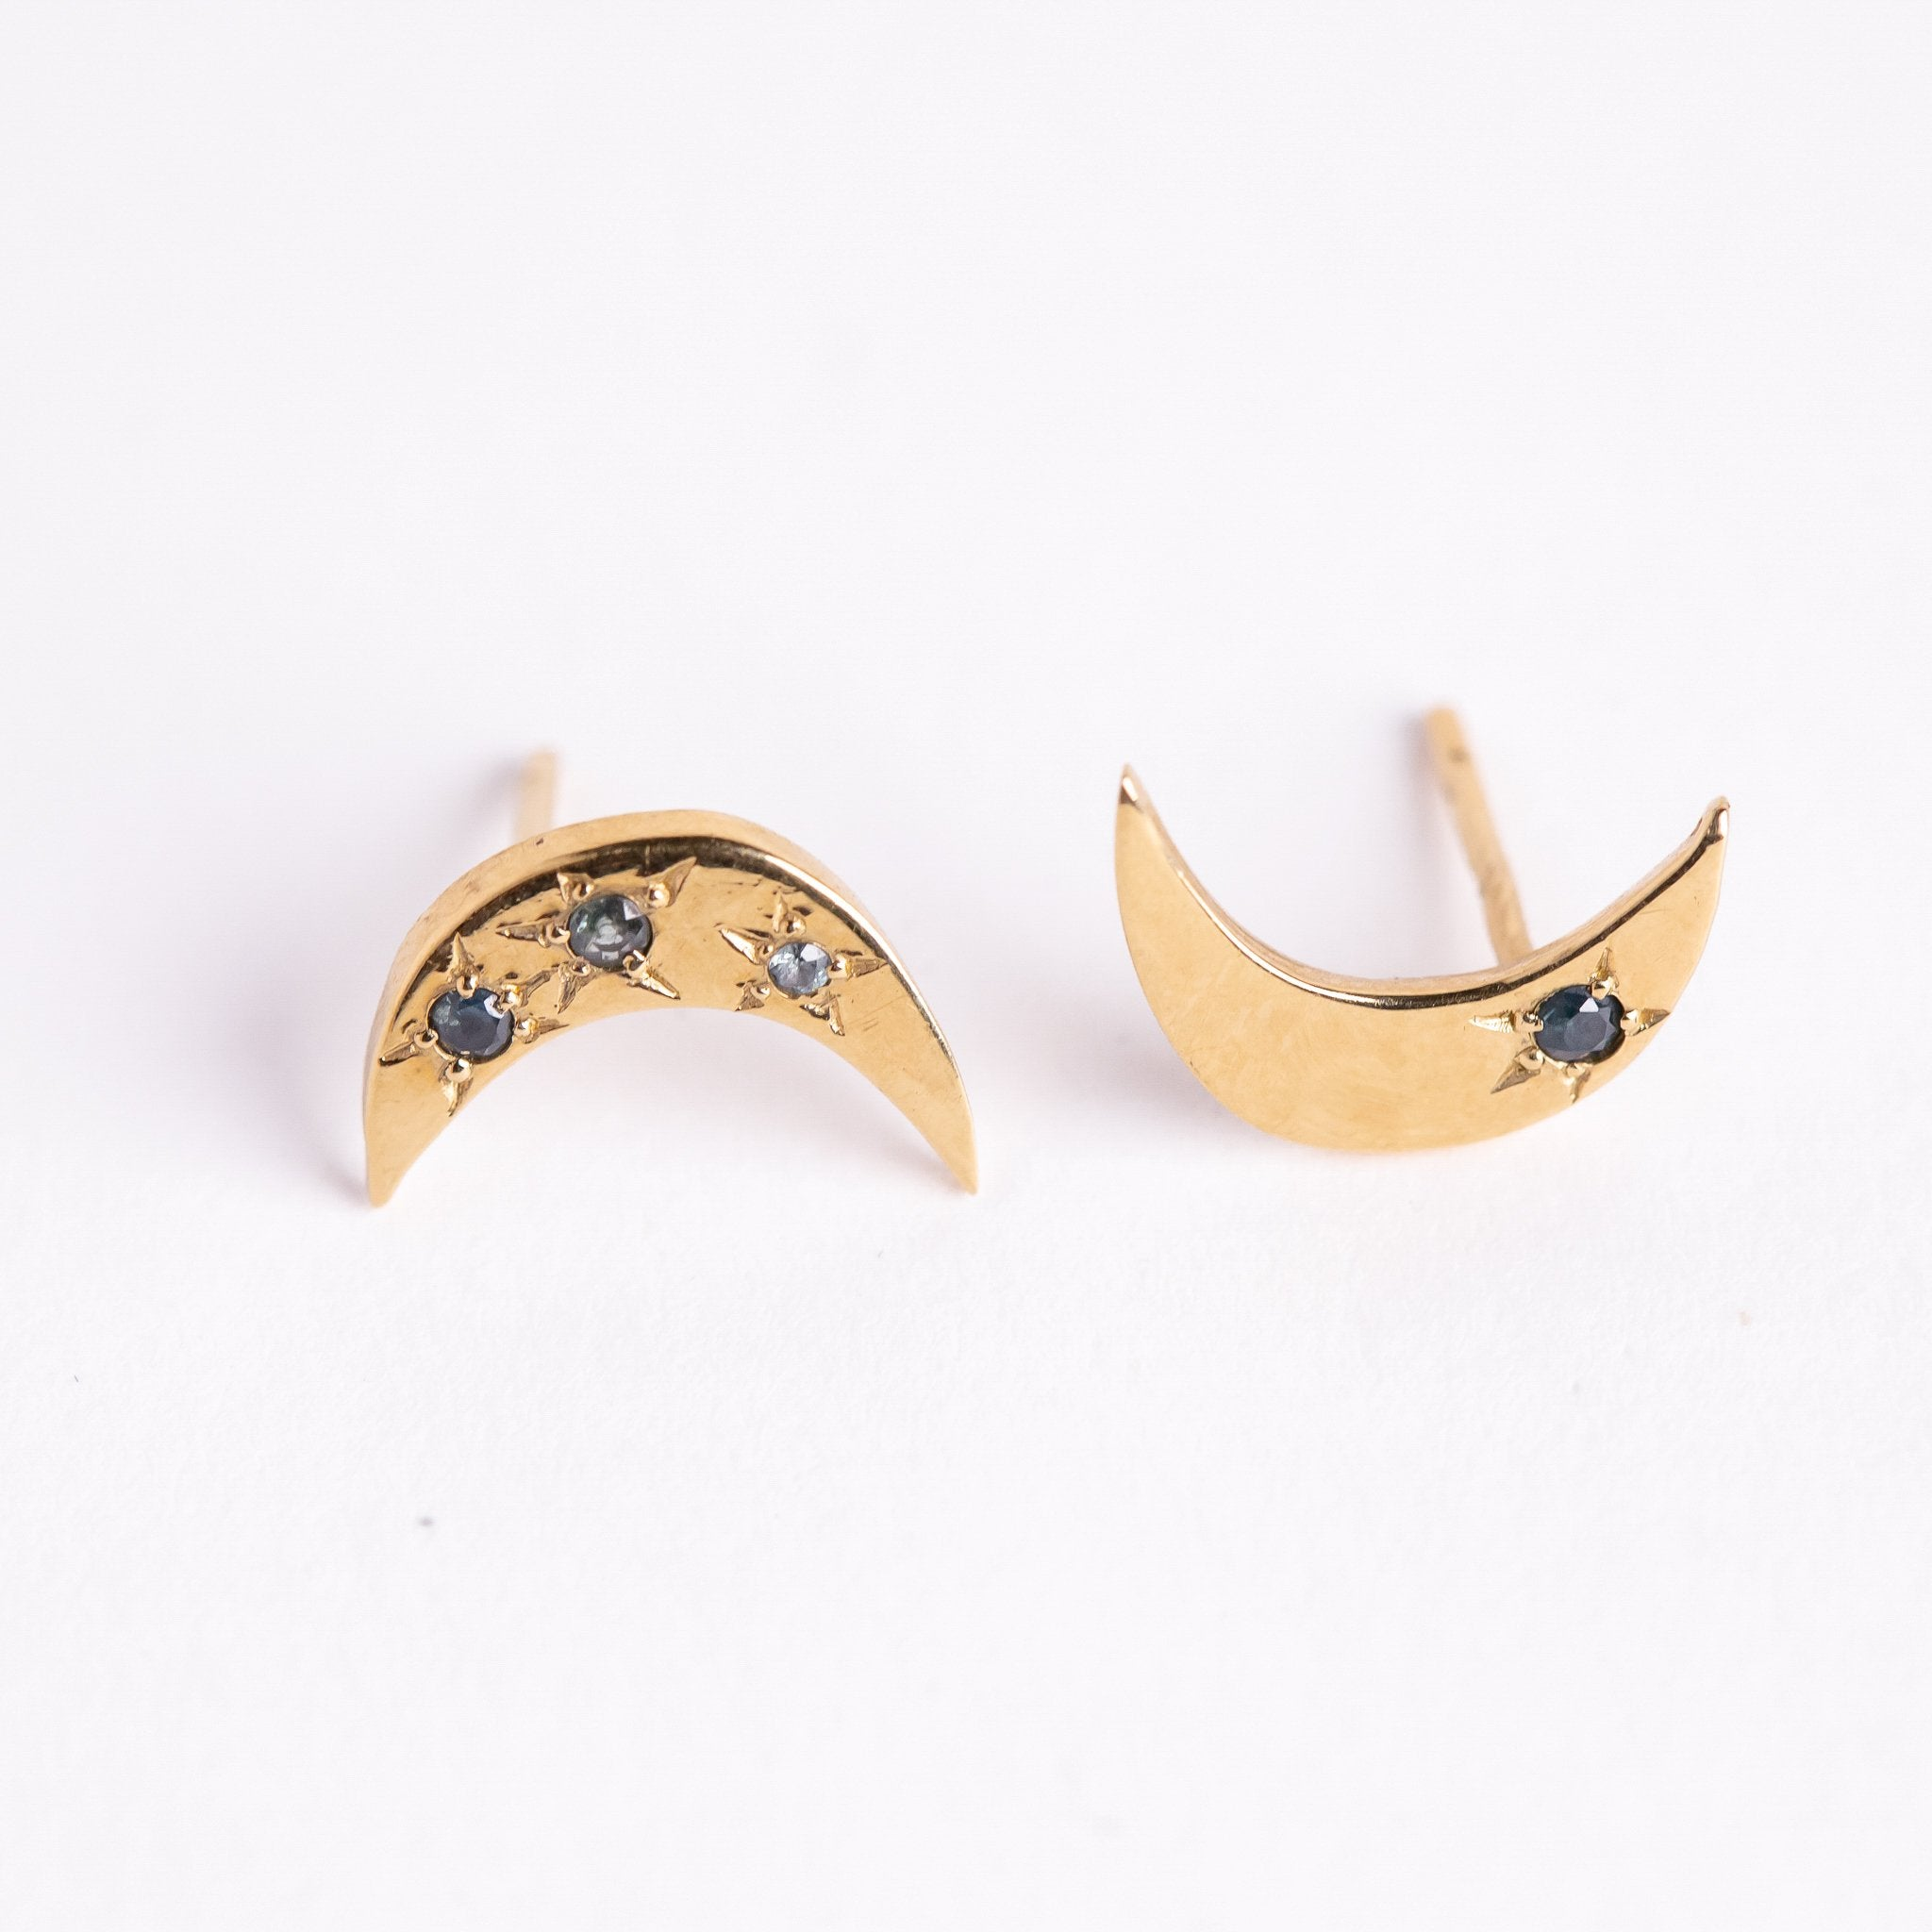 9ct moon shape Gold Stud Earring with Australian Sapphires, Hand Made Jewellery, Made in Melbourne